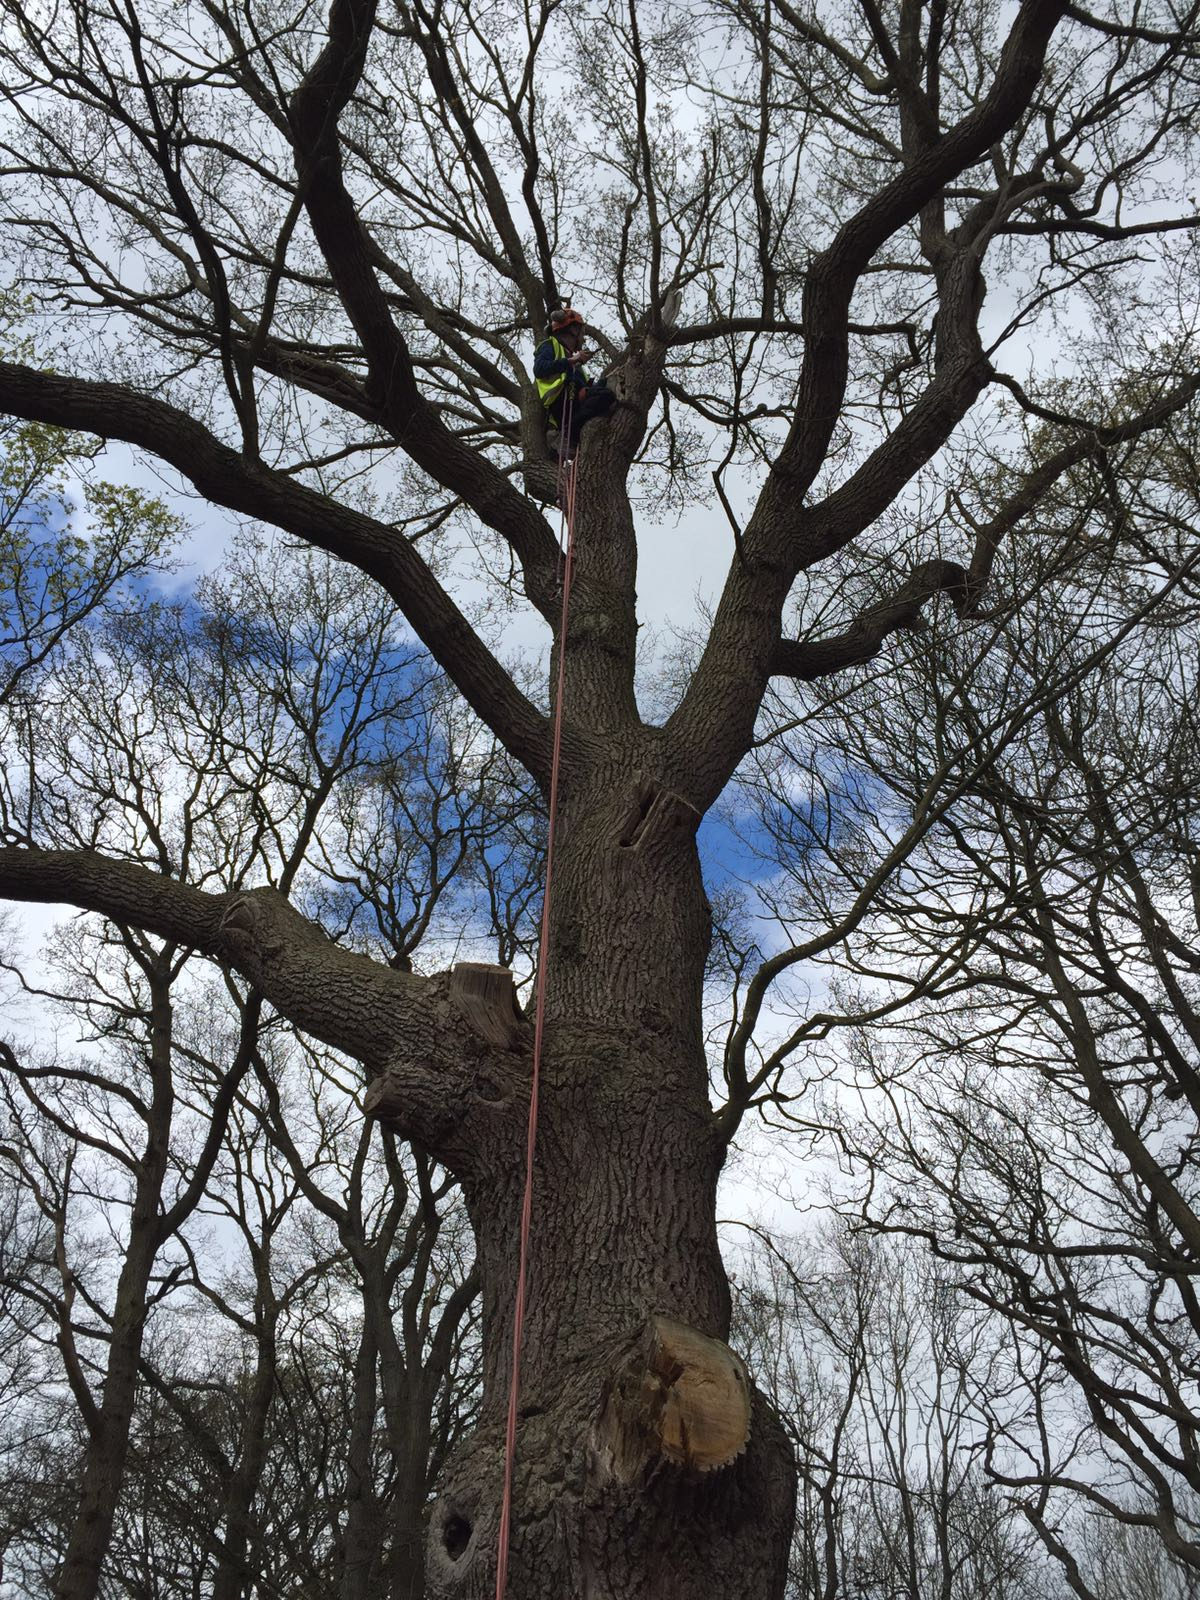 Tree survey for bats